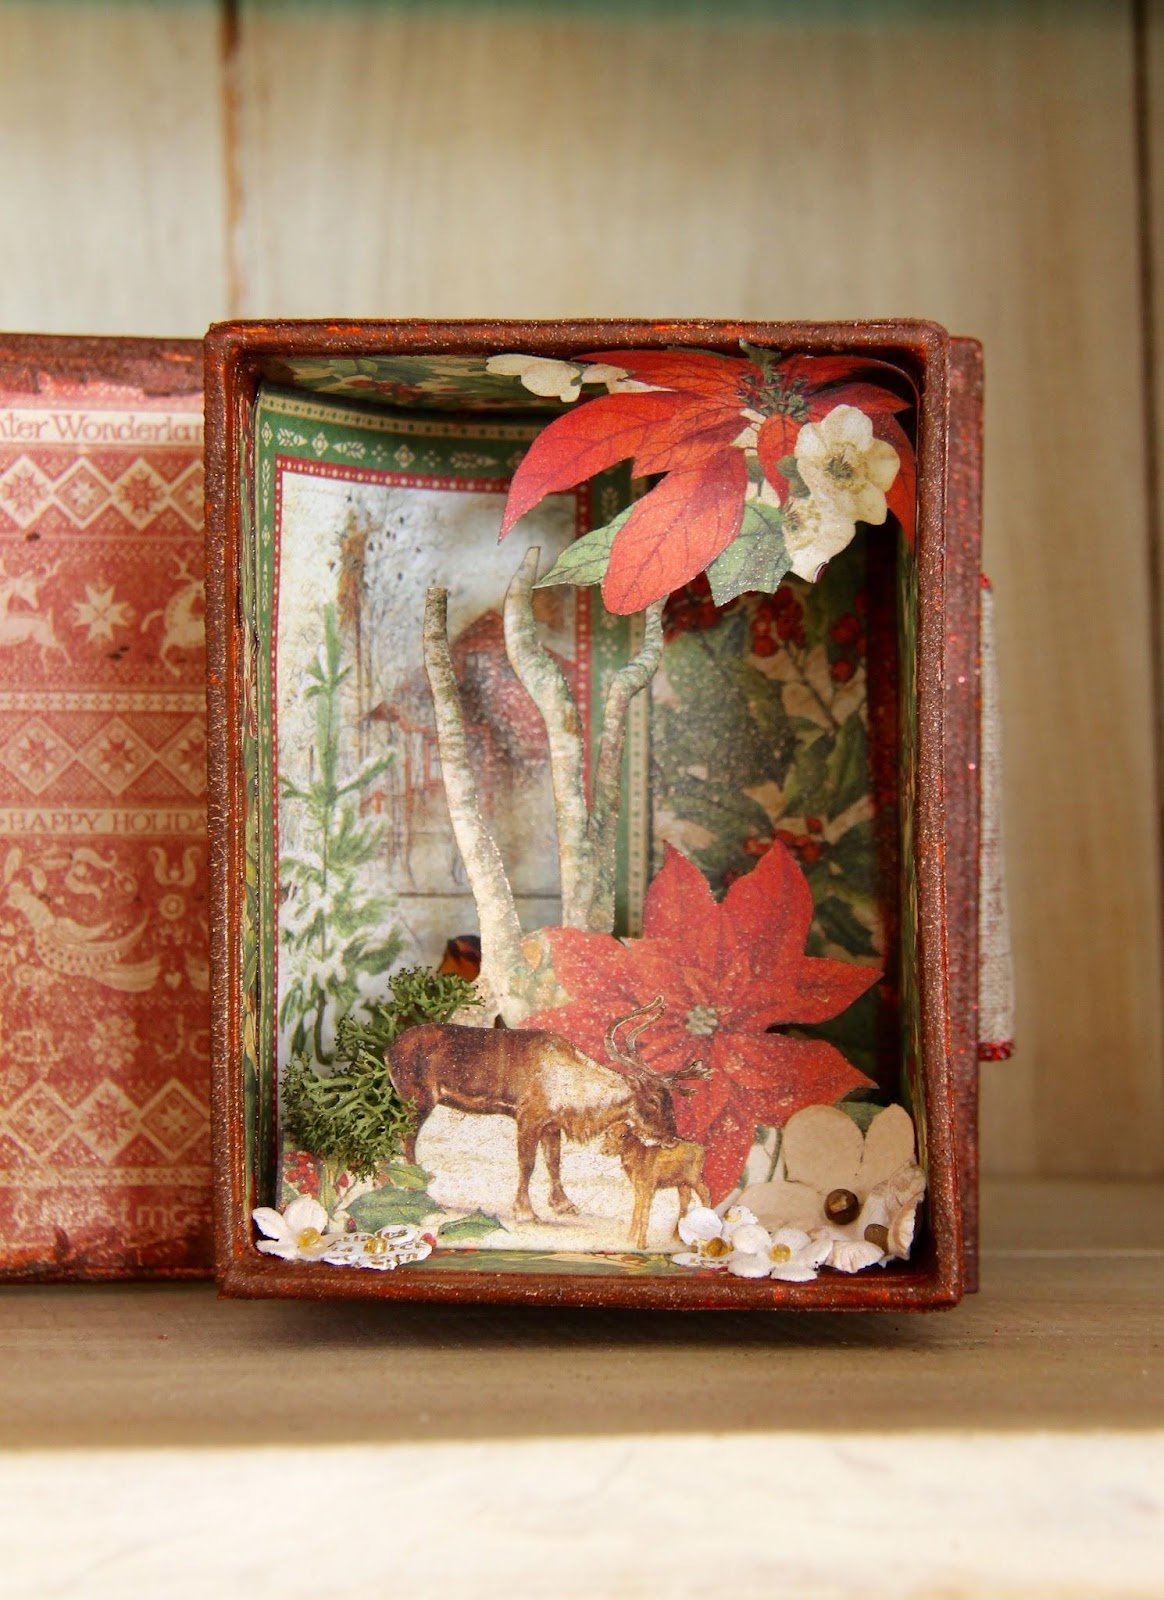 Winter Wonderland Book Box by Marina Blaukitchen Product by Graphic 45 photo 5.jpg